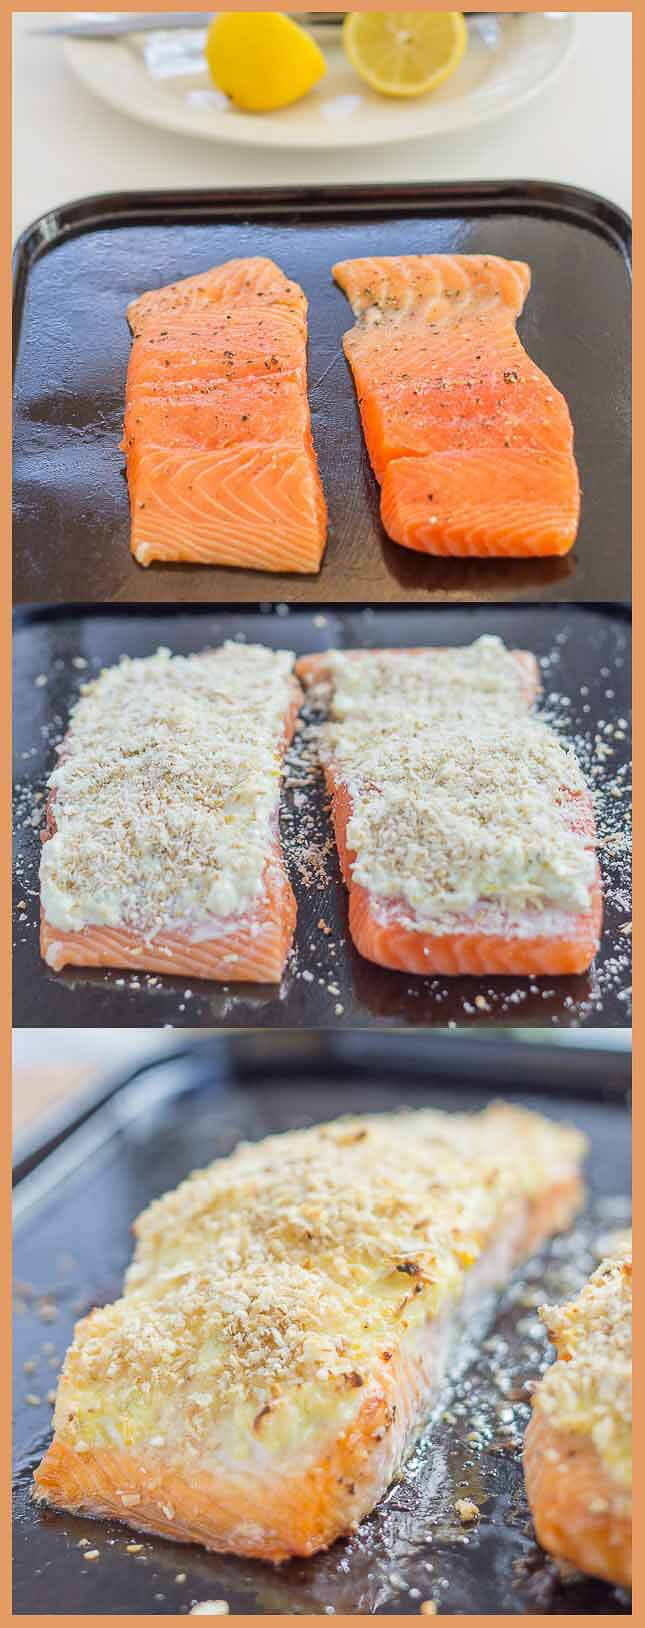 Collage of pictures showing step by step procedure for how to make this Oven Baked Salmon with Cream Cheese and Oat Bran Crust